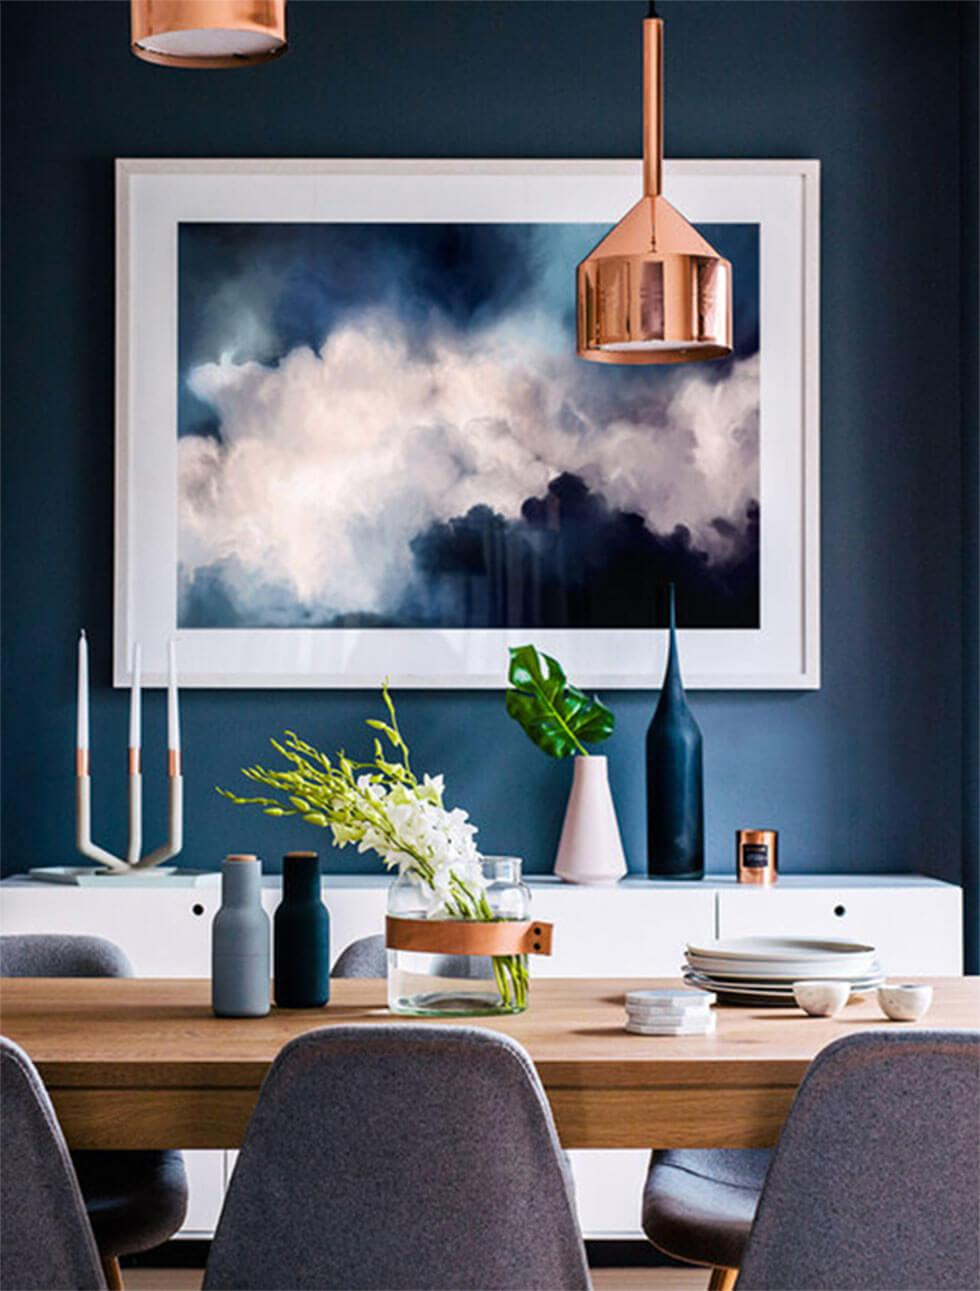 Modern dining room with dark blue backdrop and textured wall hanging